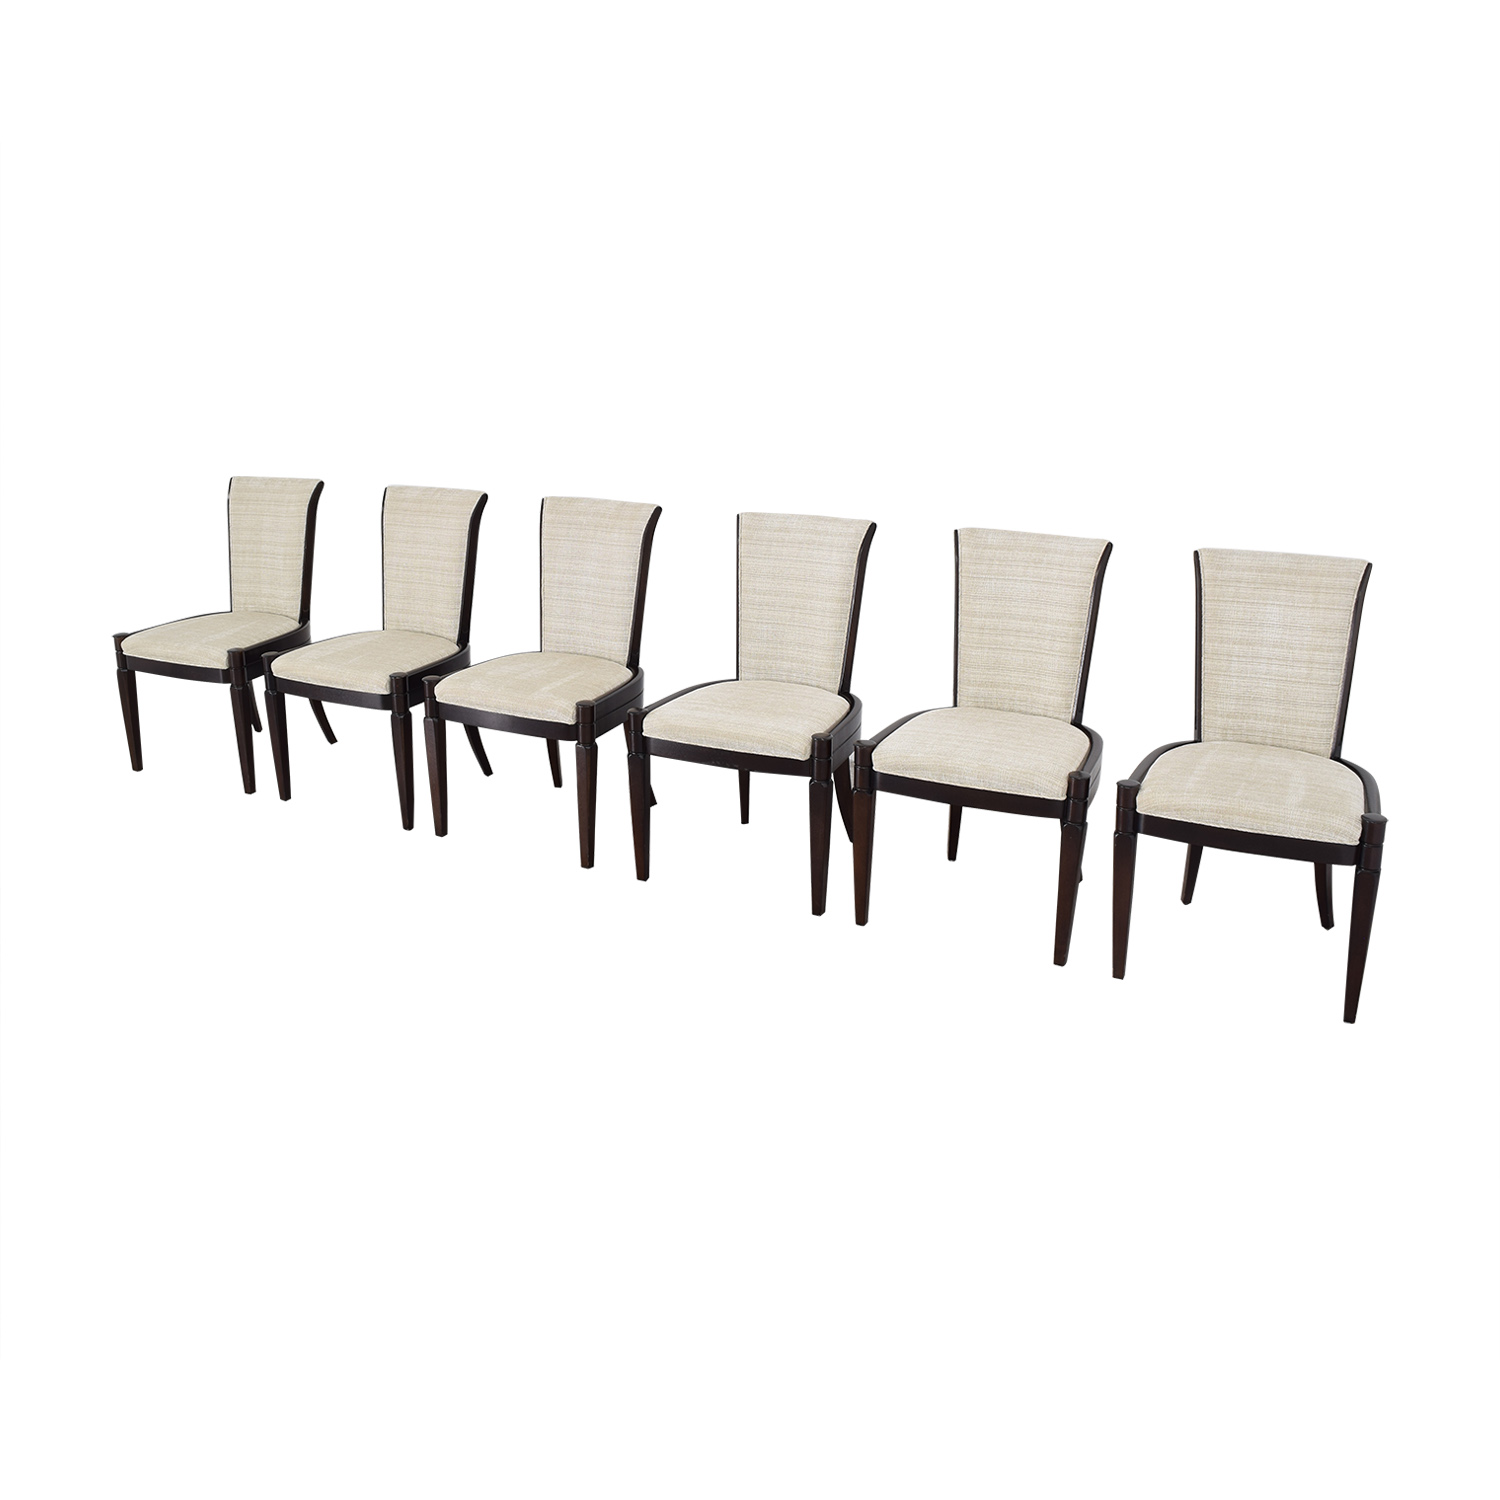 Century Furniture Century Furniture Upholstered Dining Chairs nj